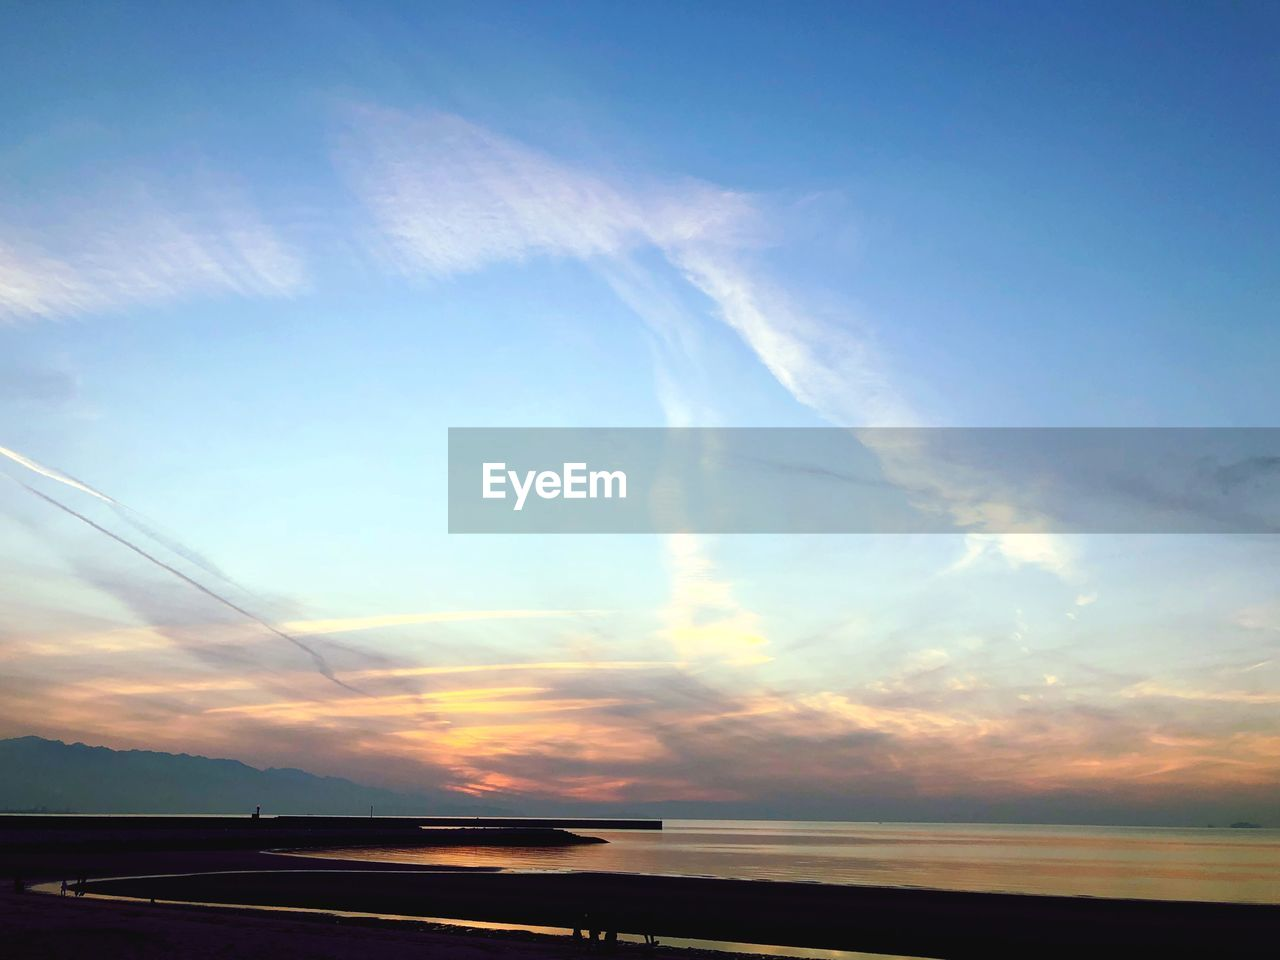 sky, cloud - sky, scenics, sunset, nature, beauty in nature, water, tranquility, sea, no people, tranquil scene, outdoors, blue, horizon over water, day